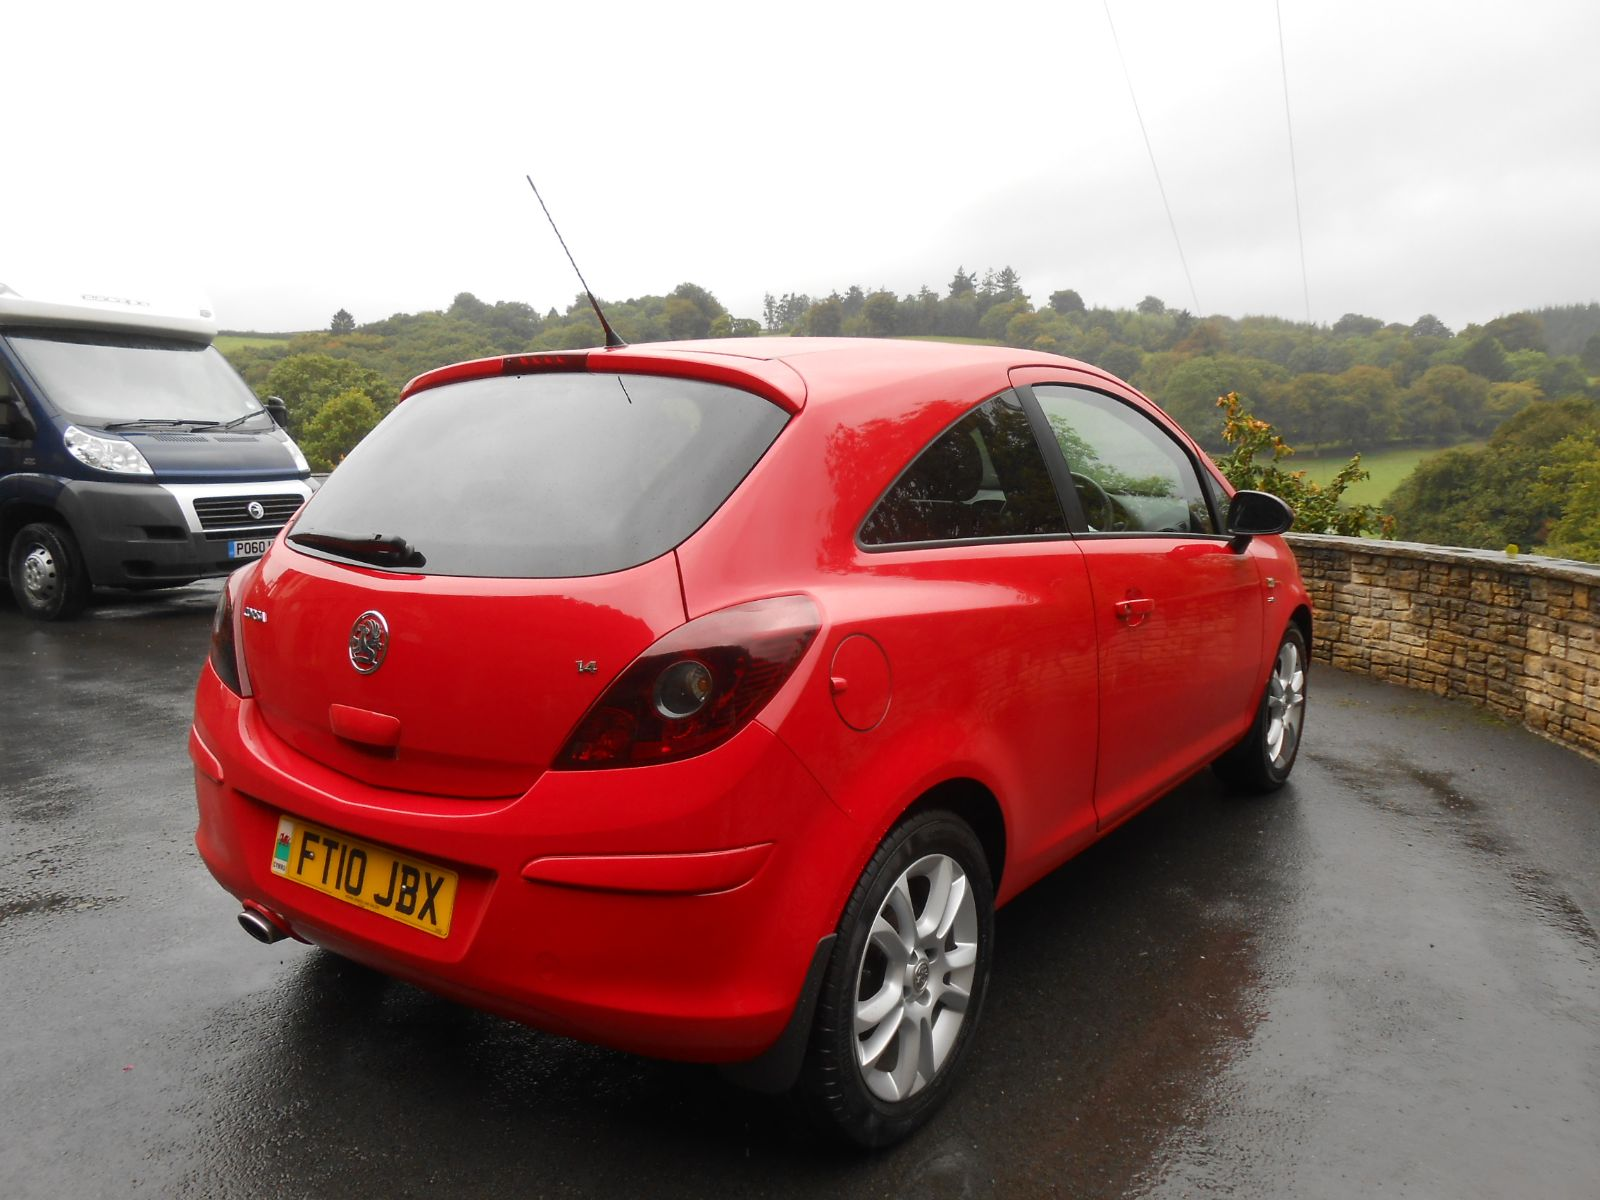 vauxhall corsa 1 4 sxi car for sale llanidloes powys mid wales kevin jones cars used cars. Black Bedroom Furniture Sets. Home Design Ideas